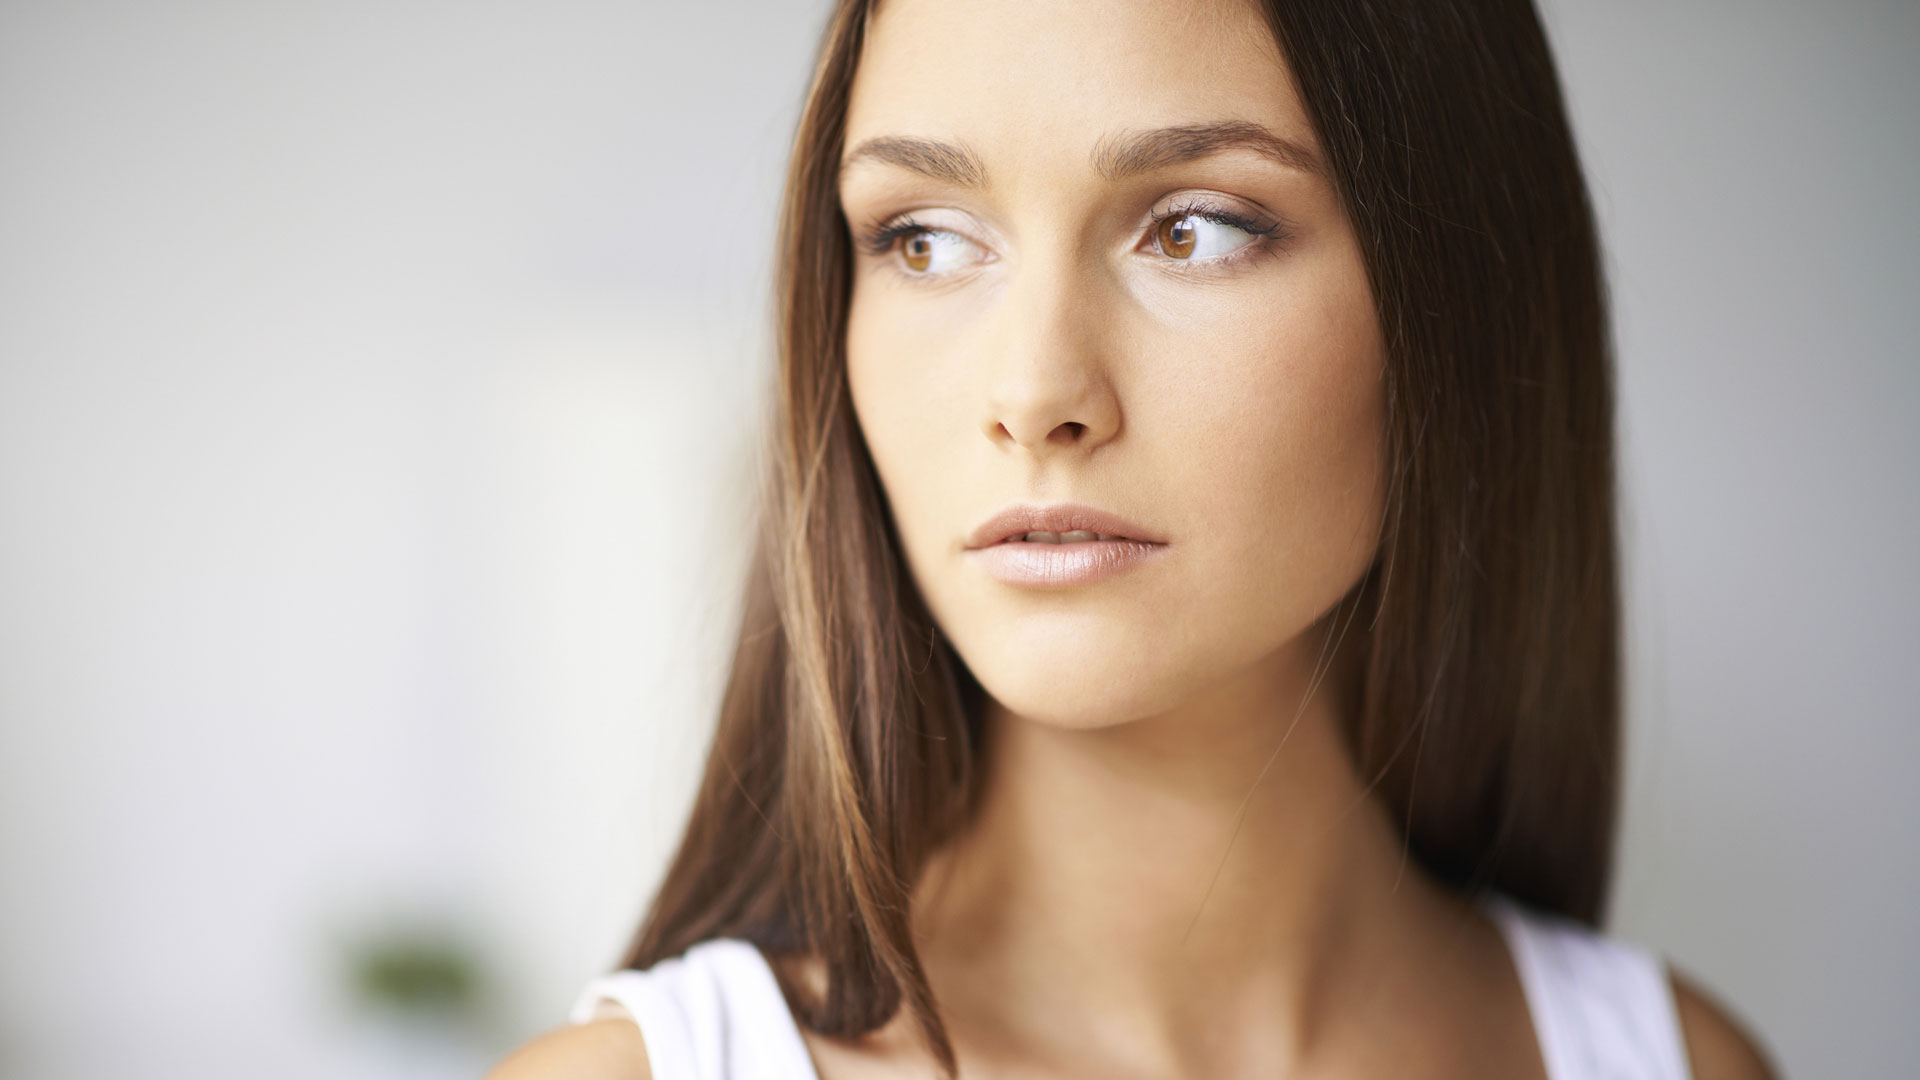 Young woman with flawless face